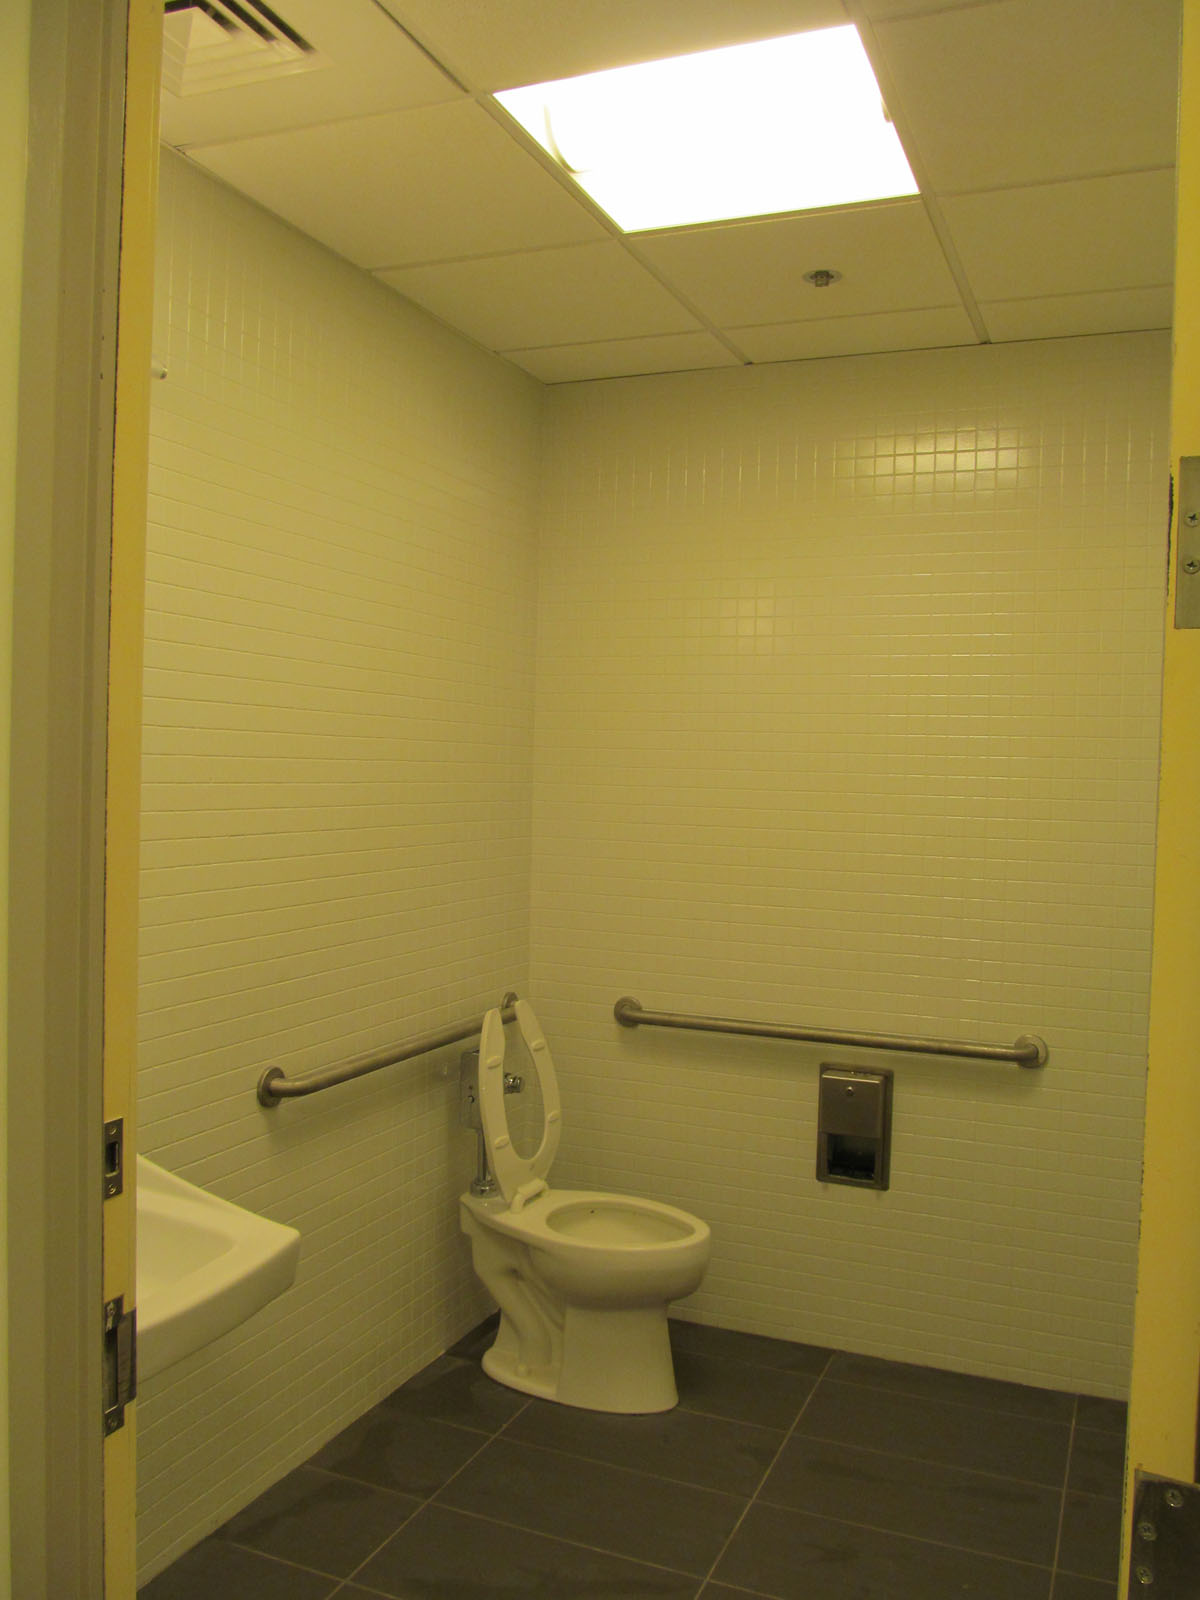 230 Congress St. Boston, MA - Commercial Refinishing Bathroom - After